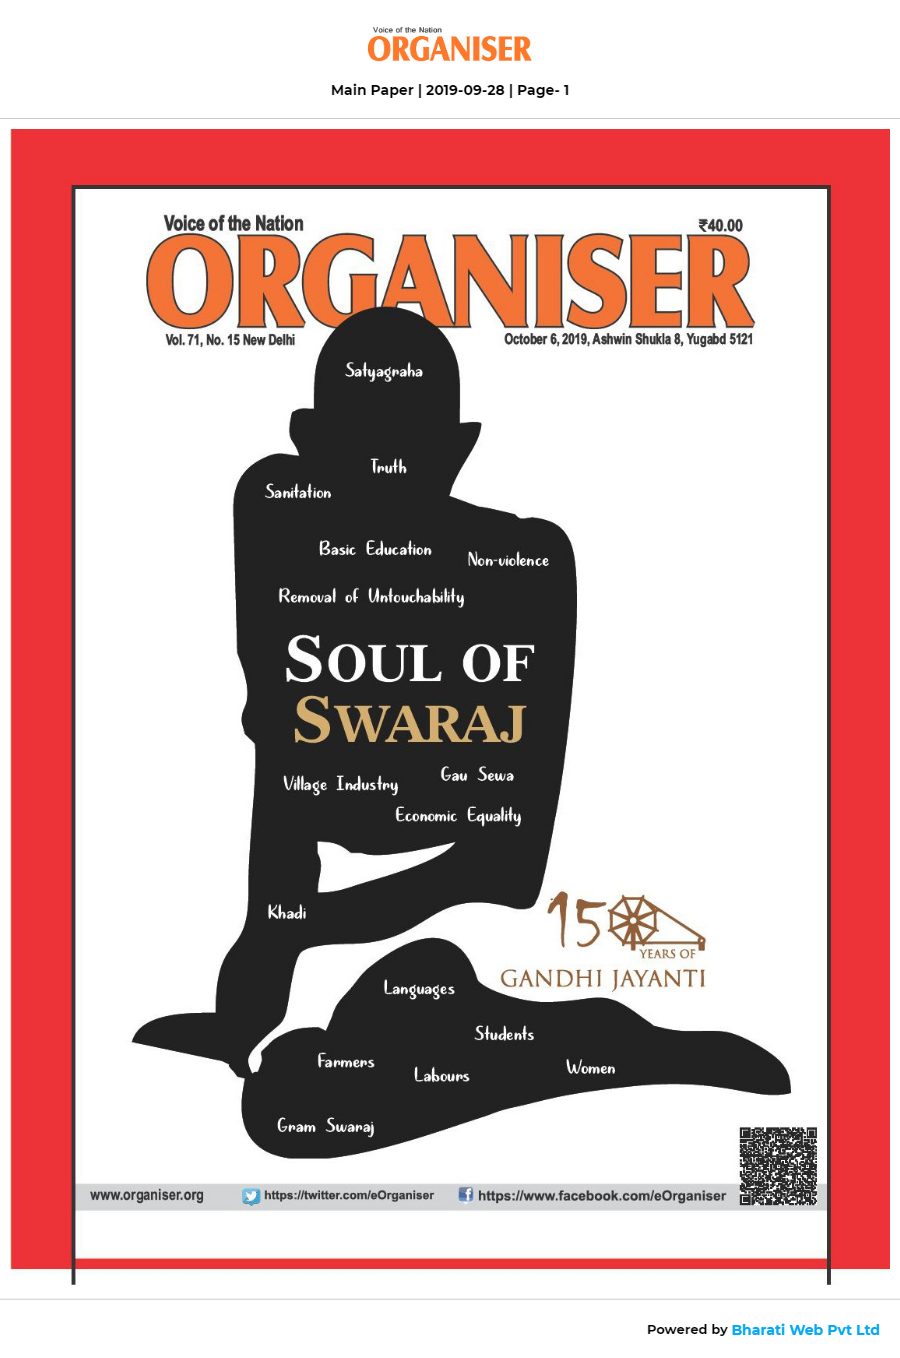 The cover of the October 6 issue of the Organiser magazine.